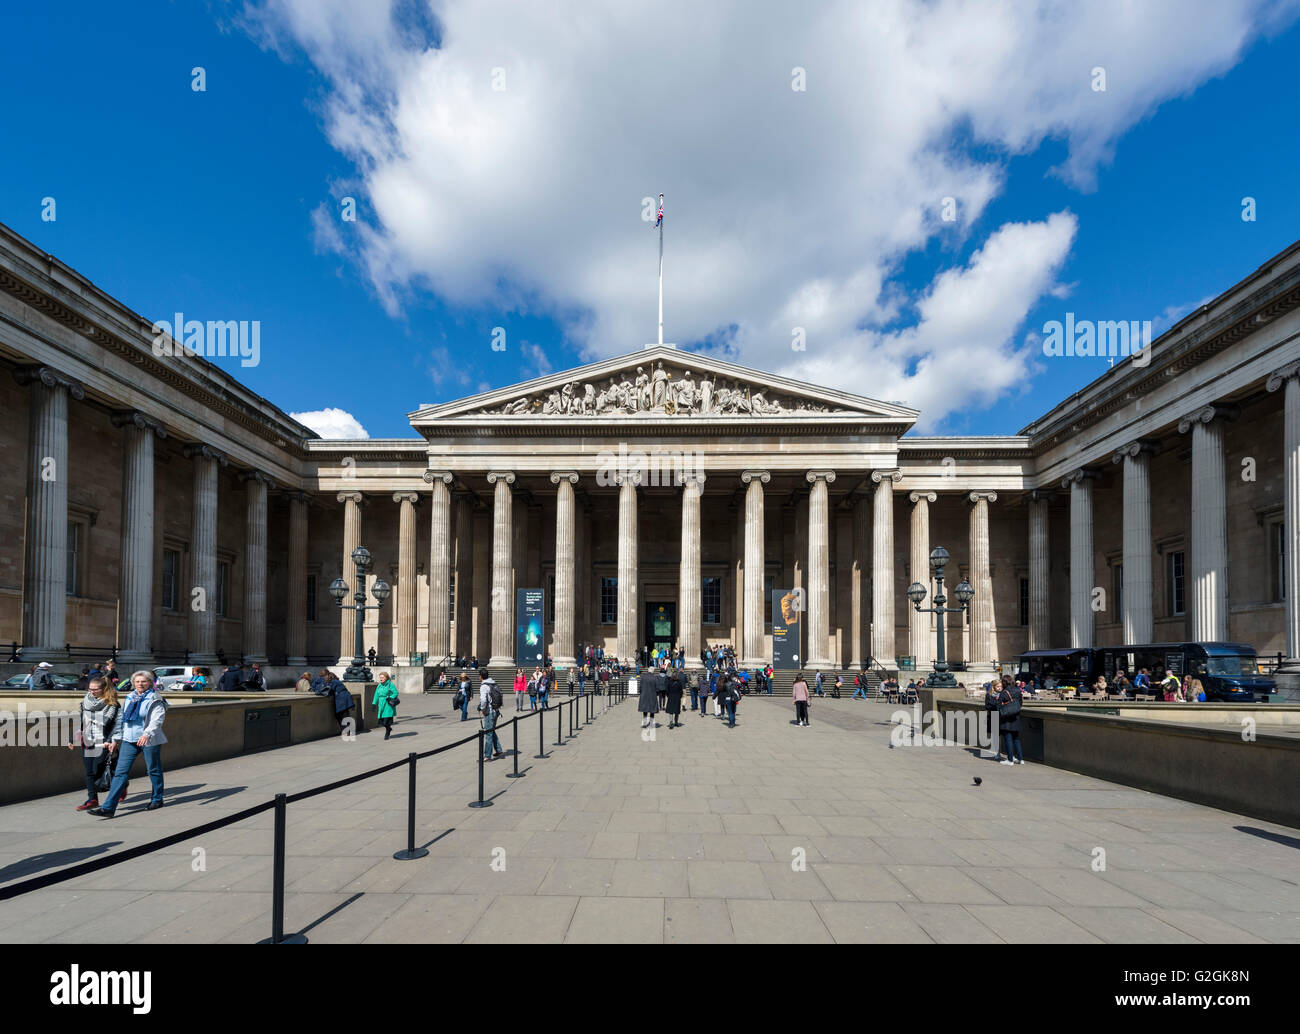 The main entrance to the British Museum, Great Russell Street, Bloomsbury, London, England, UK - Stock Image